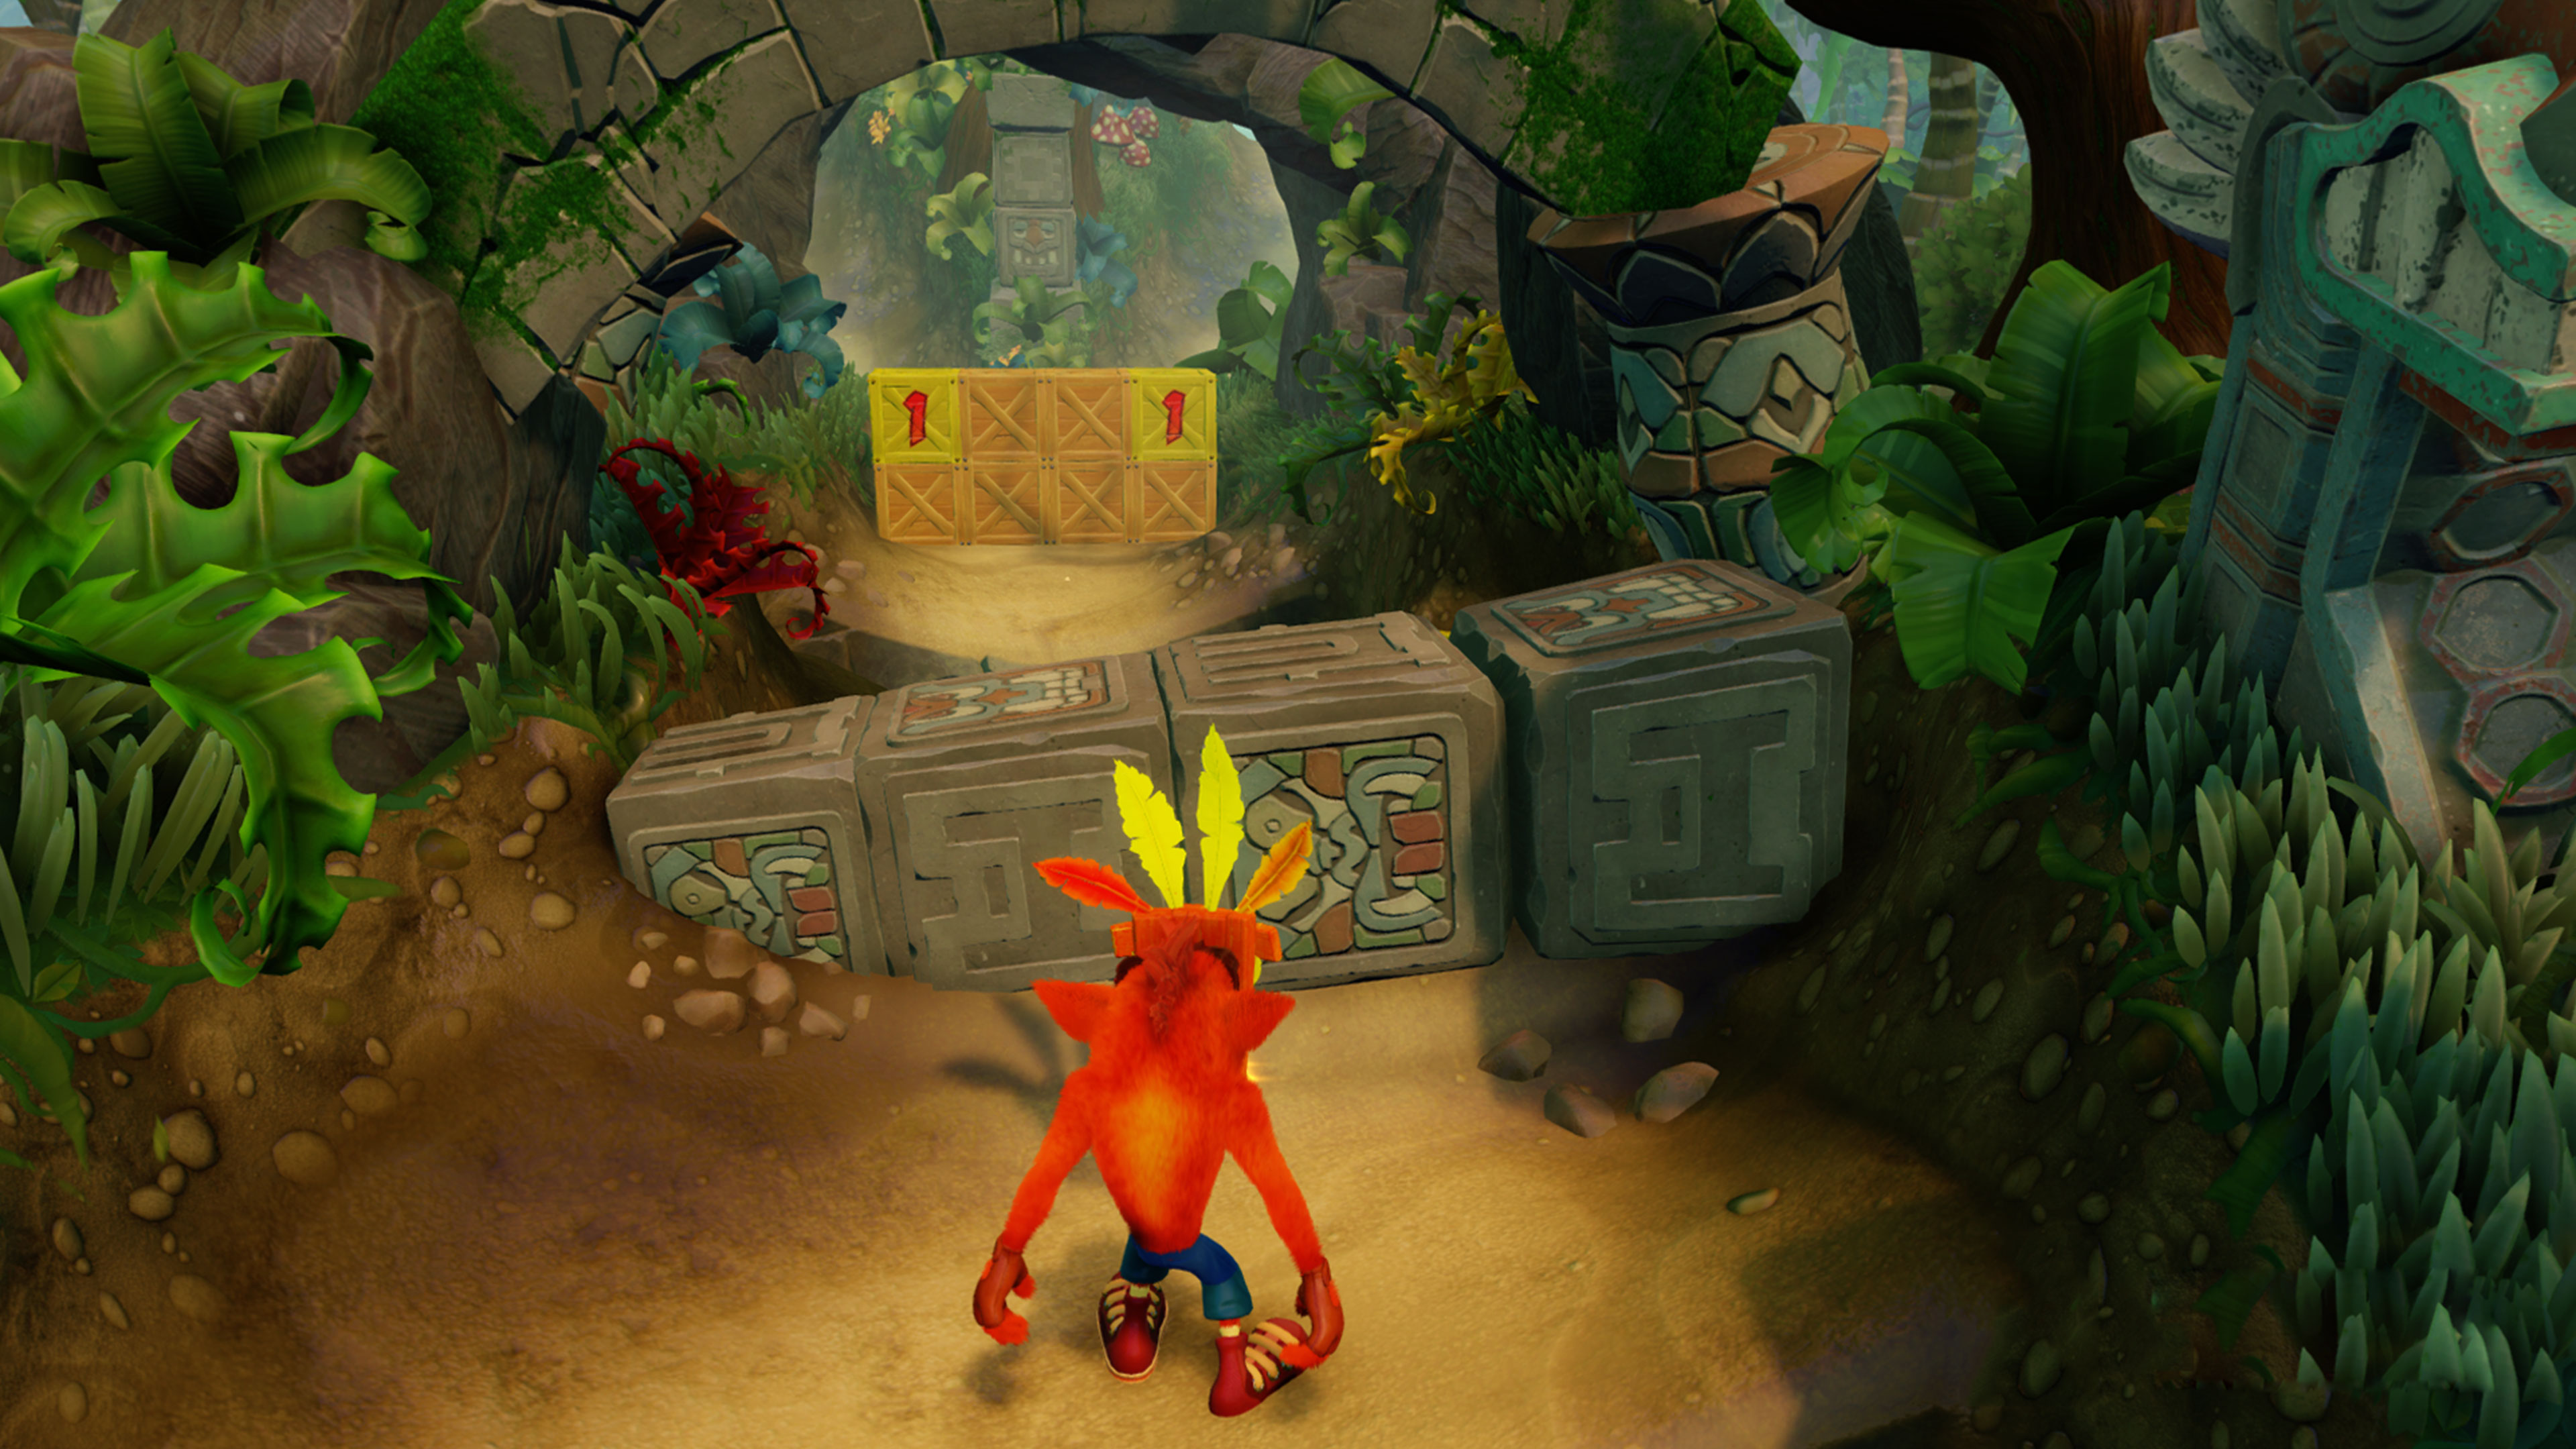 Crash Bandicoot N Sane Trilogy Wallpapers In Ultra Hd 4k Gameranx